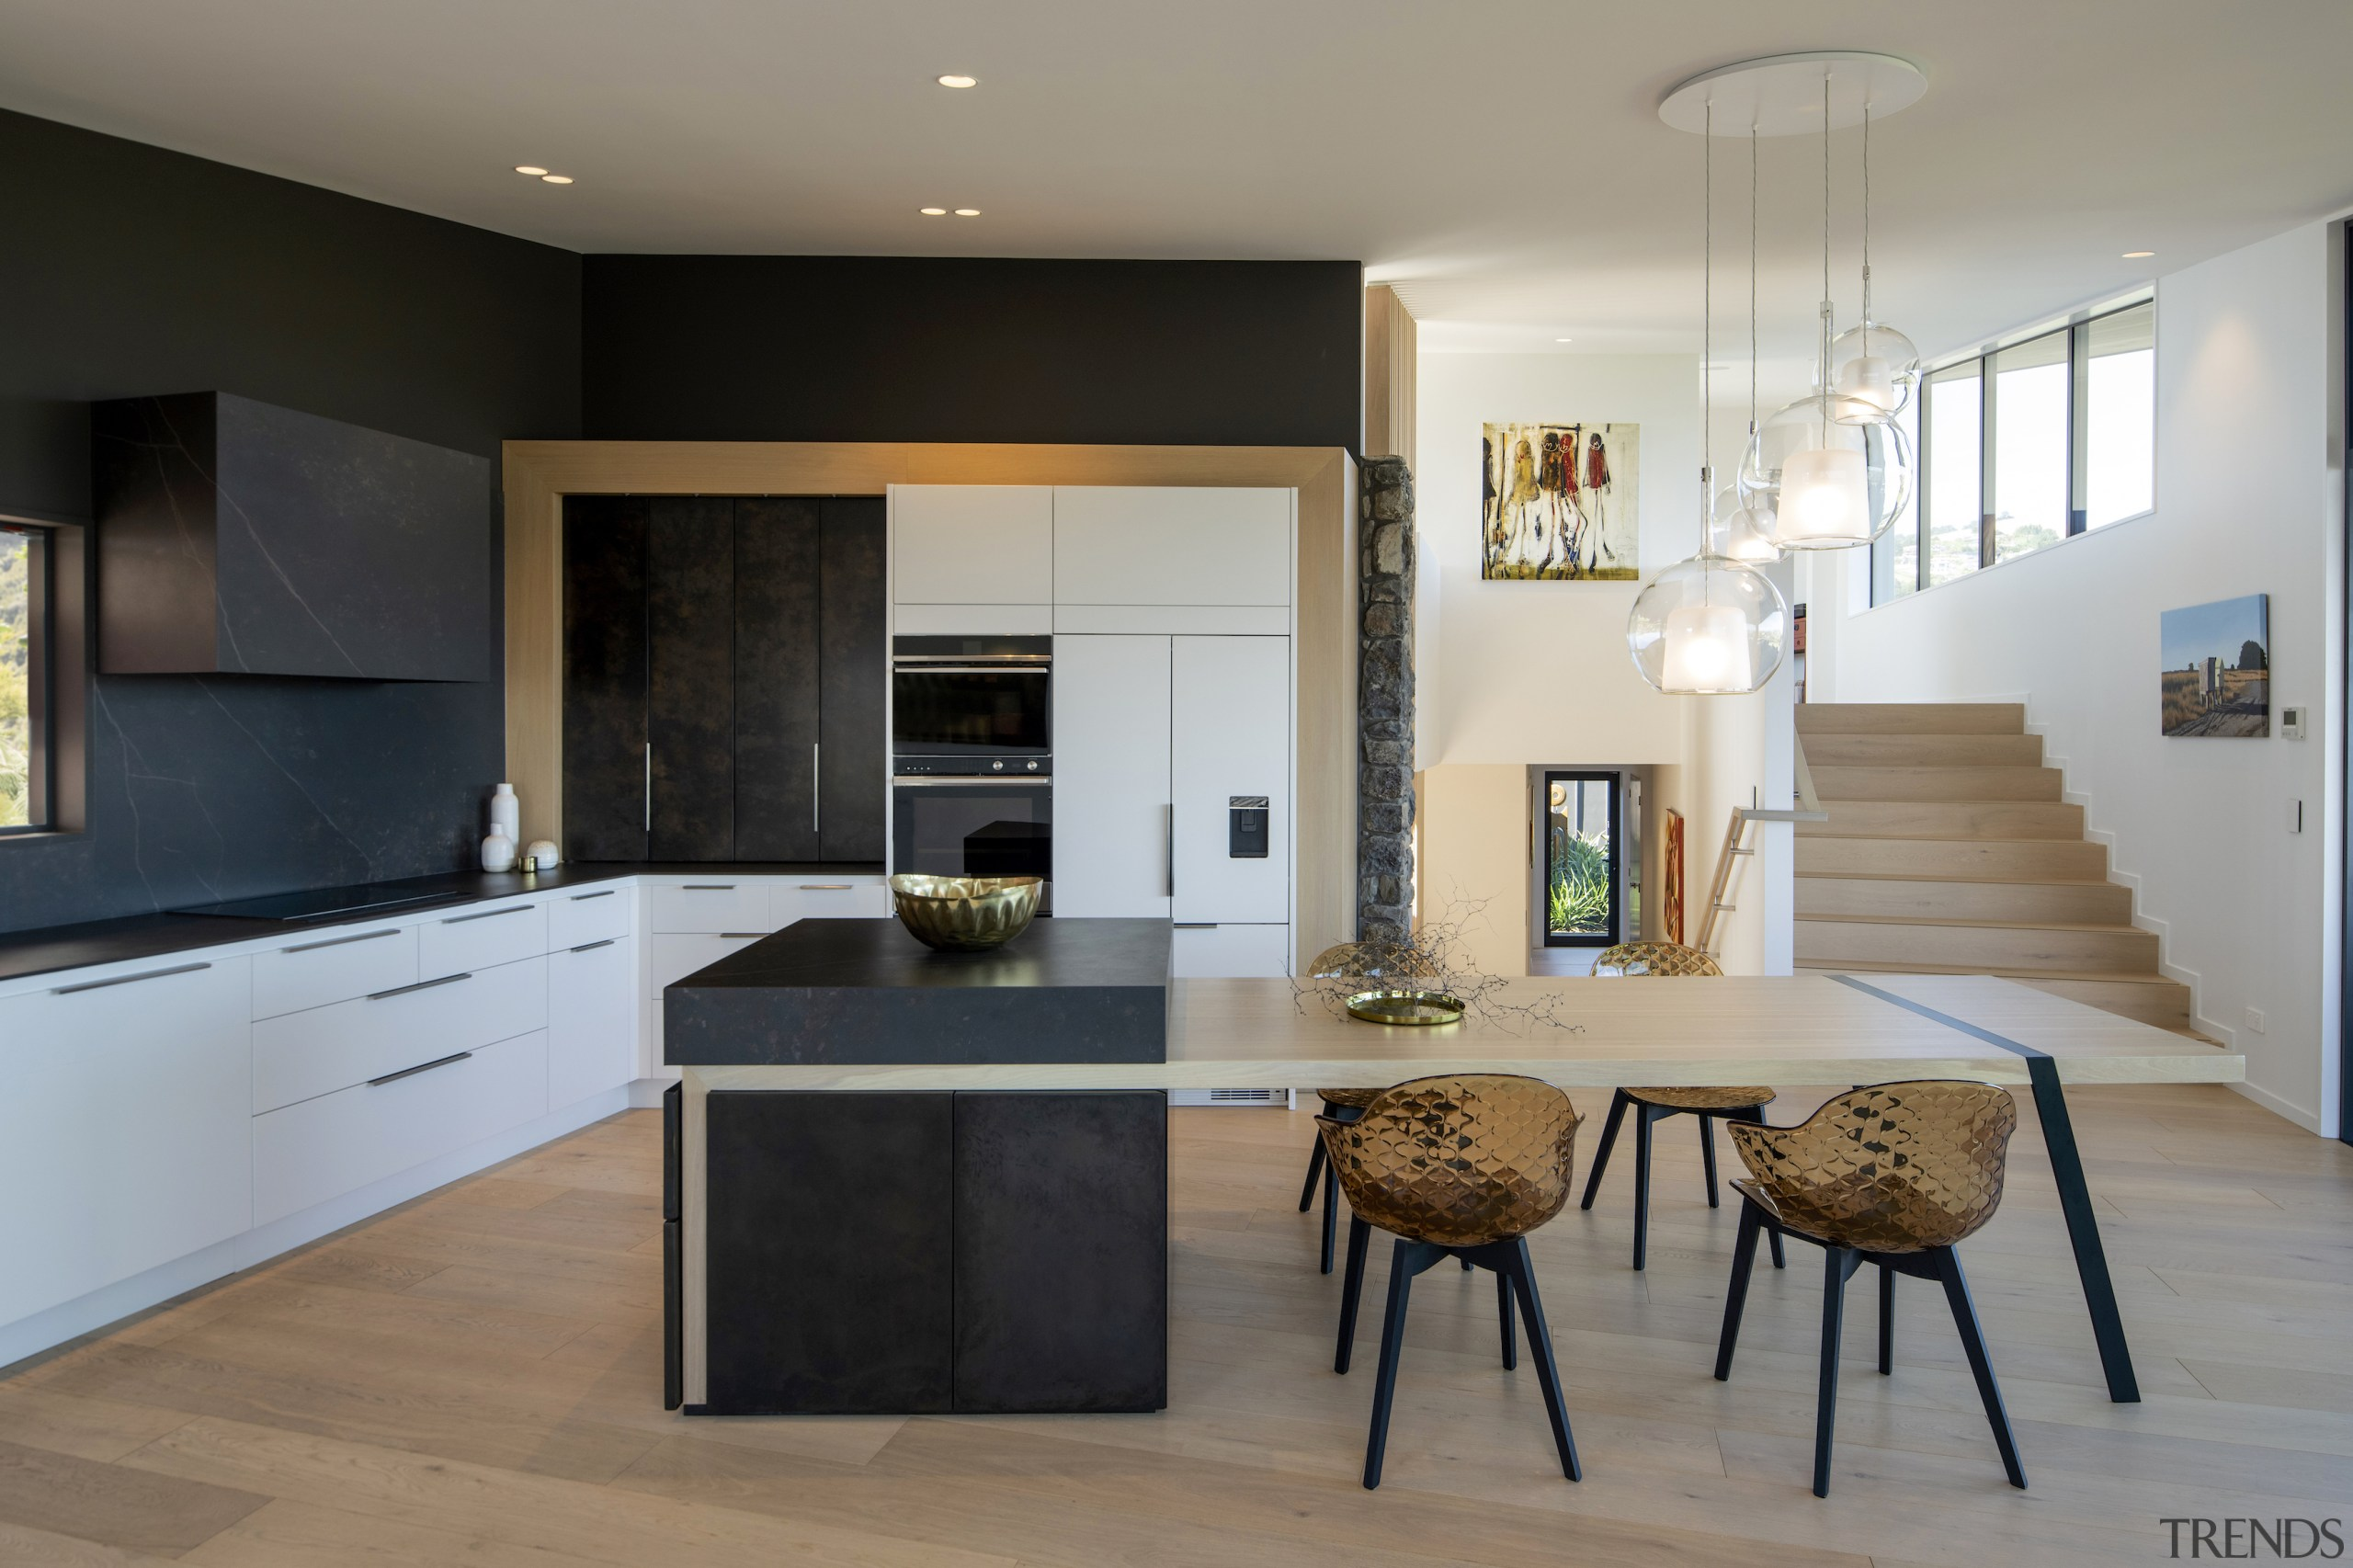 This functional, uncluttered kitchen stays true to the